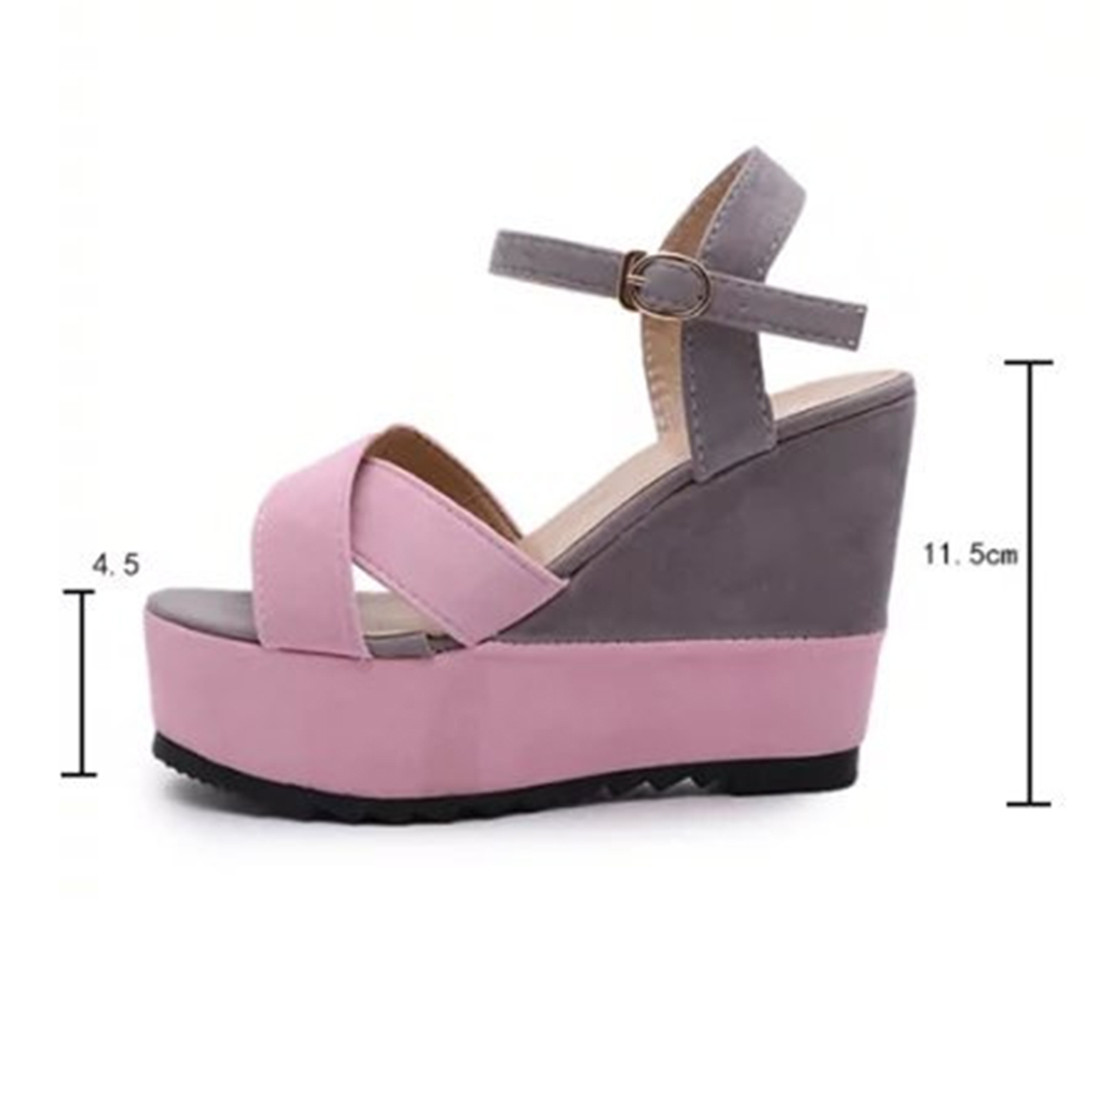 Sexy Open toe Patch Color Wedges Gladiator Sandals Women High Heels Platform Sandals Summer Women's platform wedge Shoes Woman phyanic 2017 gladiator sandals gold silver shoes woman summer platform wedges glitters creepers casual women shoes phy3323